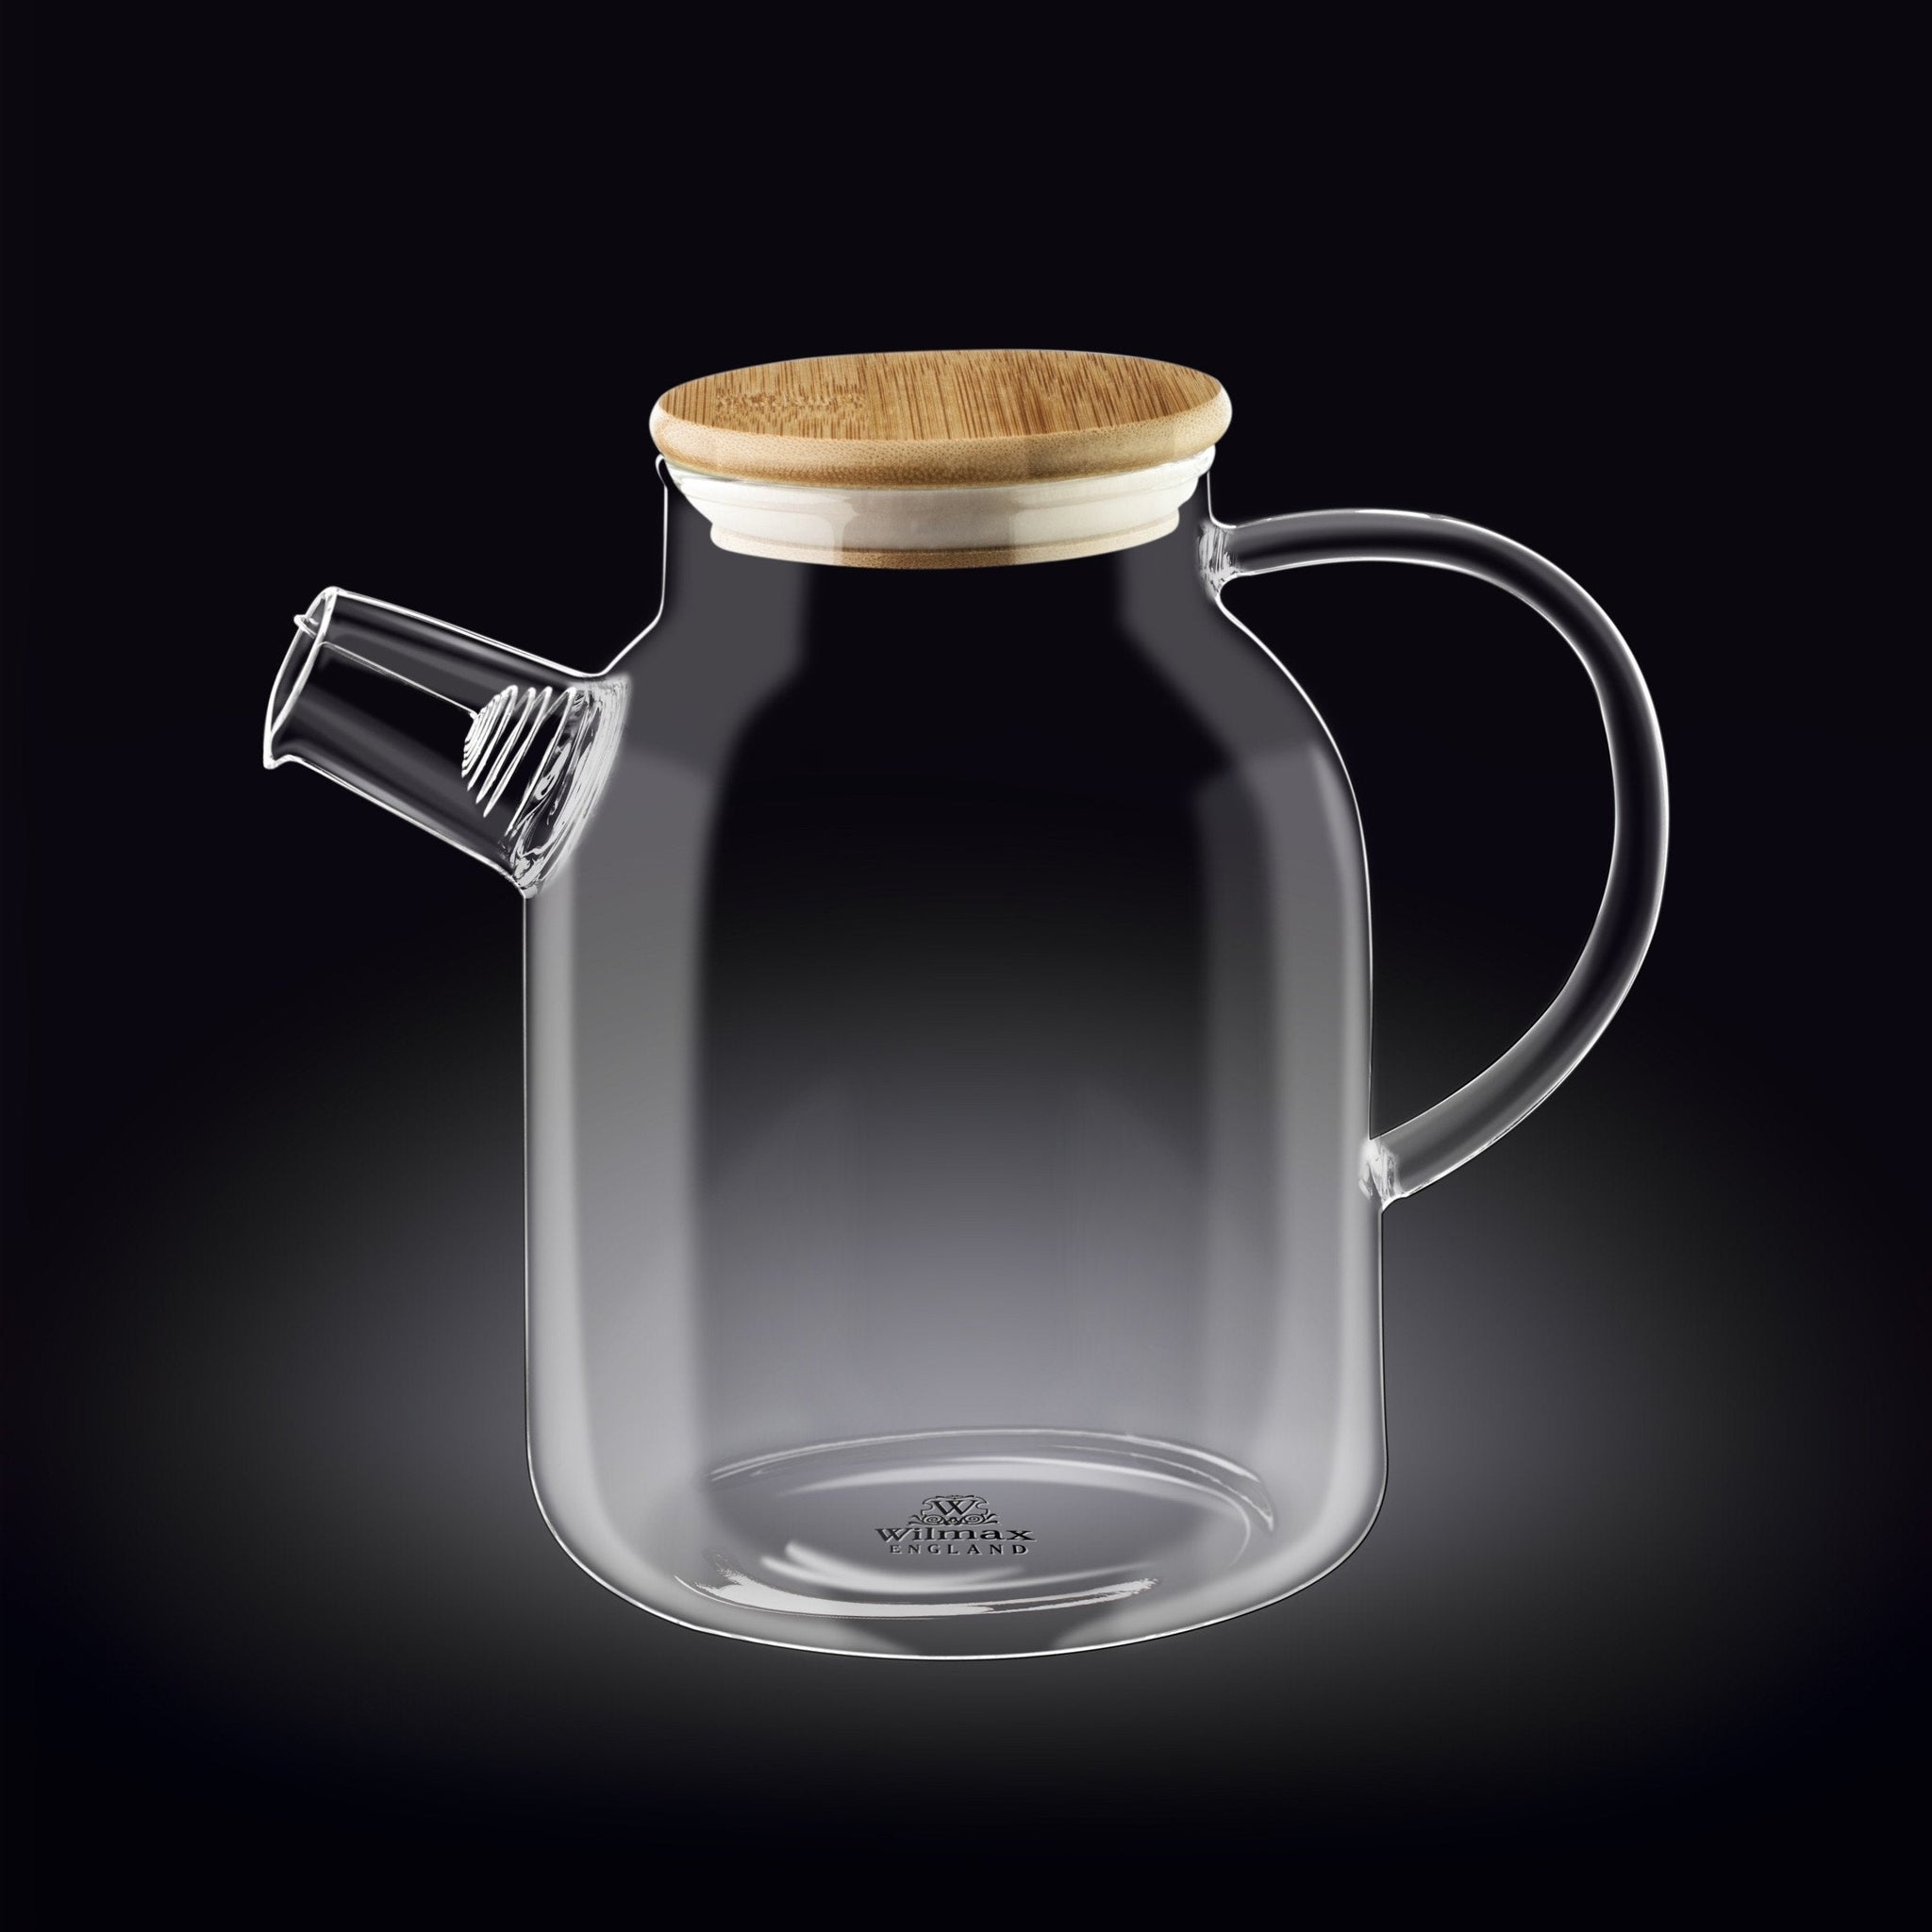 THERMO GLASS TEA POT 54 FL OZ | 1600 ML